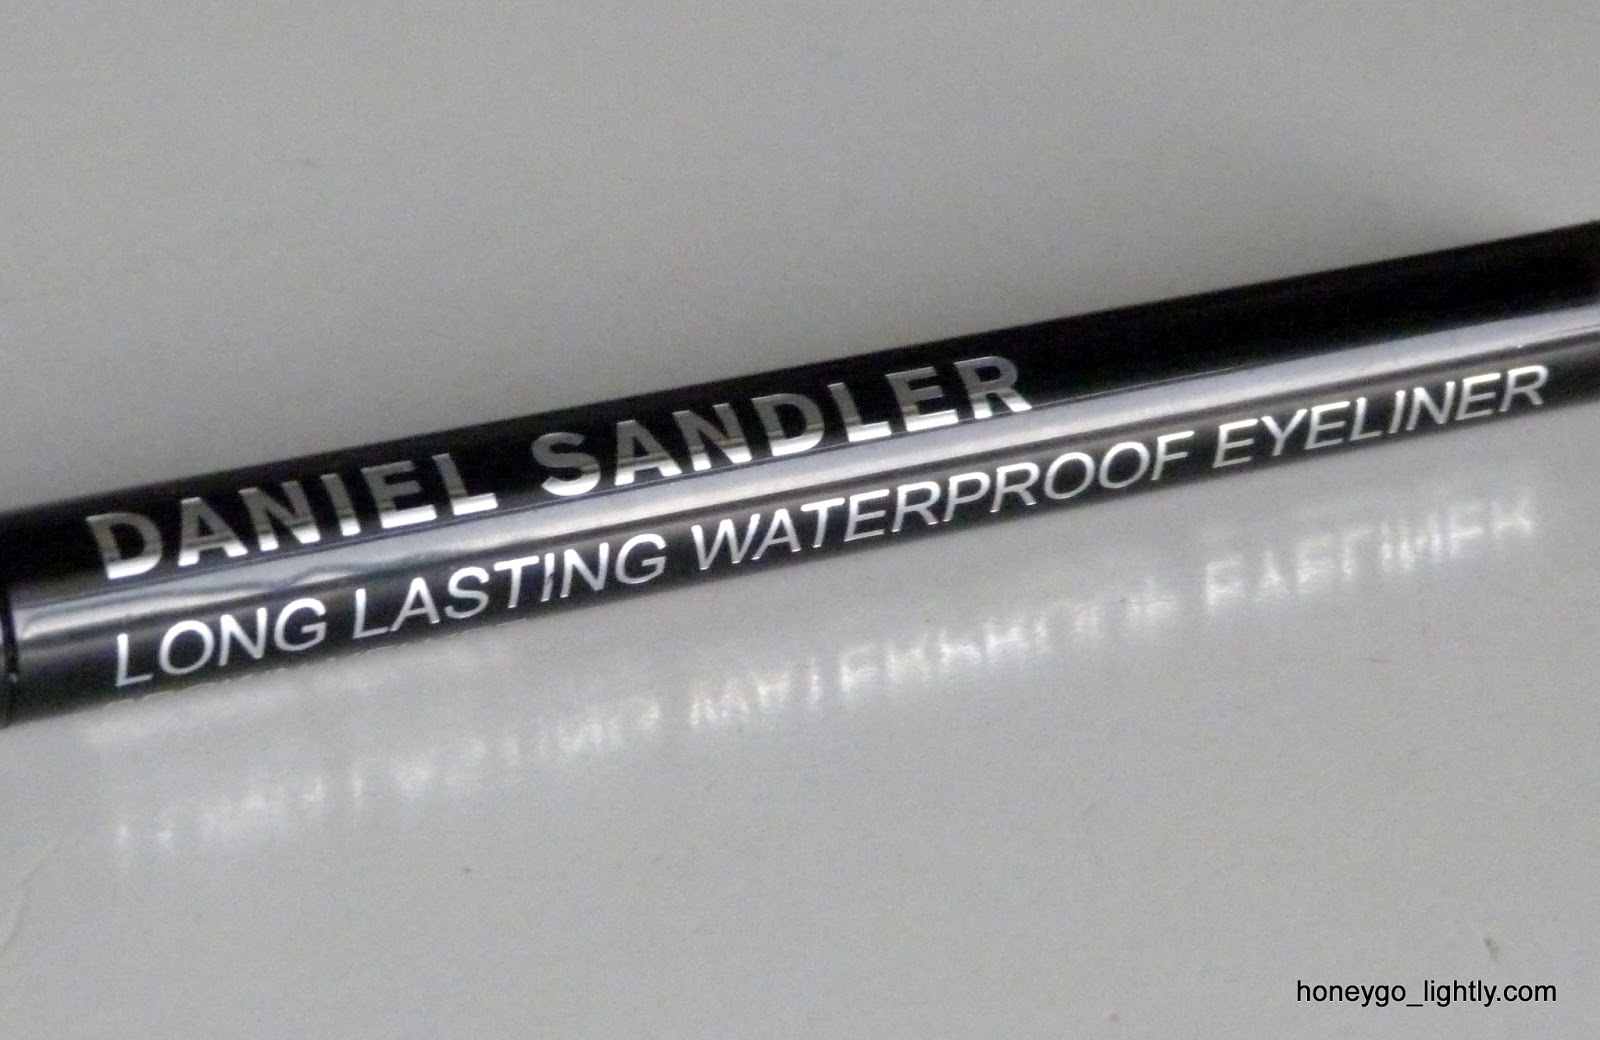 Waterproof Eyeliner by daniel sandler #17